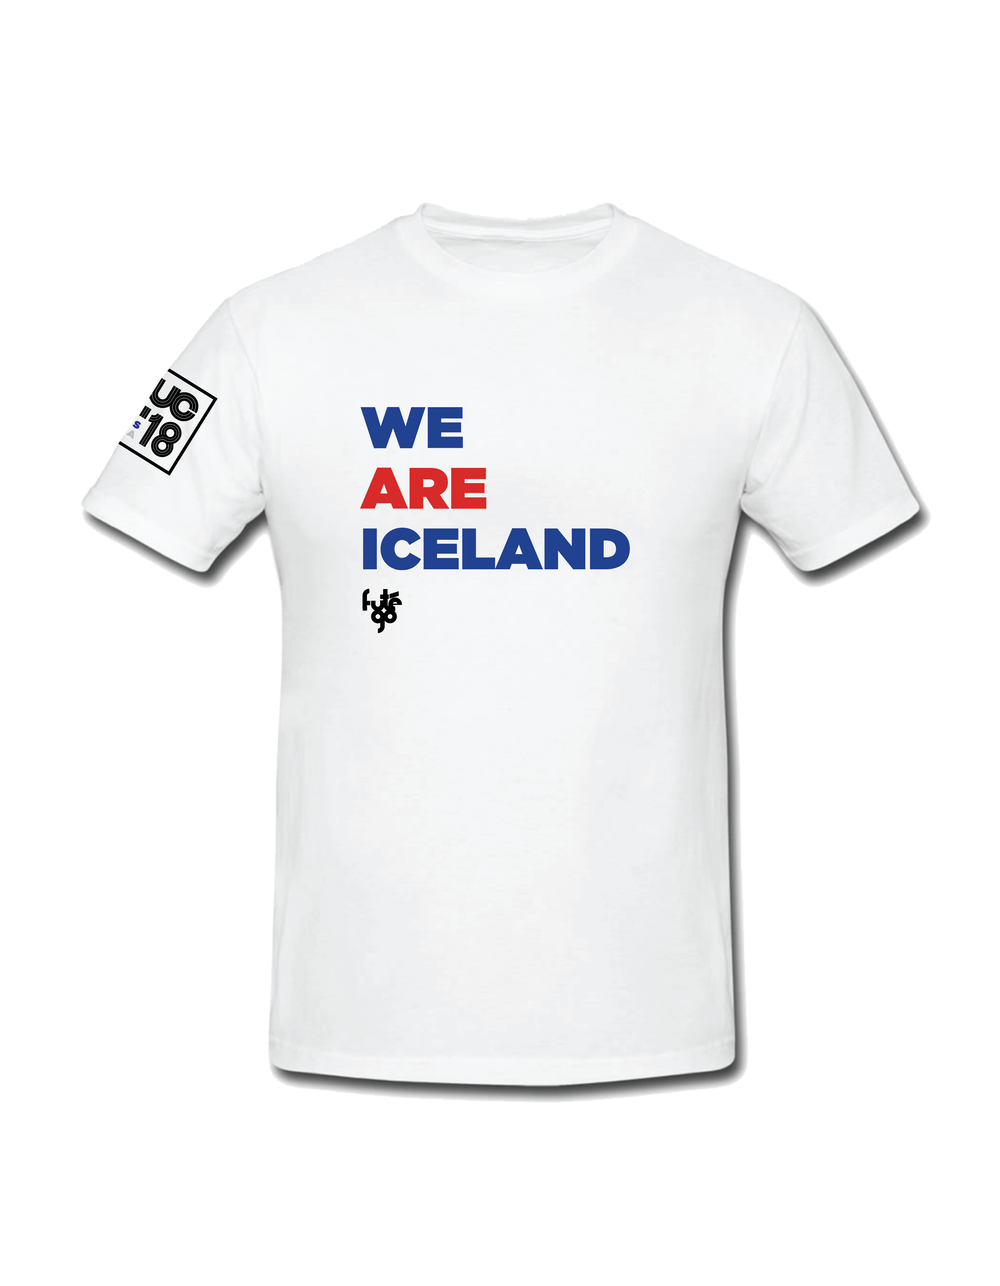 Futego_wc_2018_Chants-Iceland.png